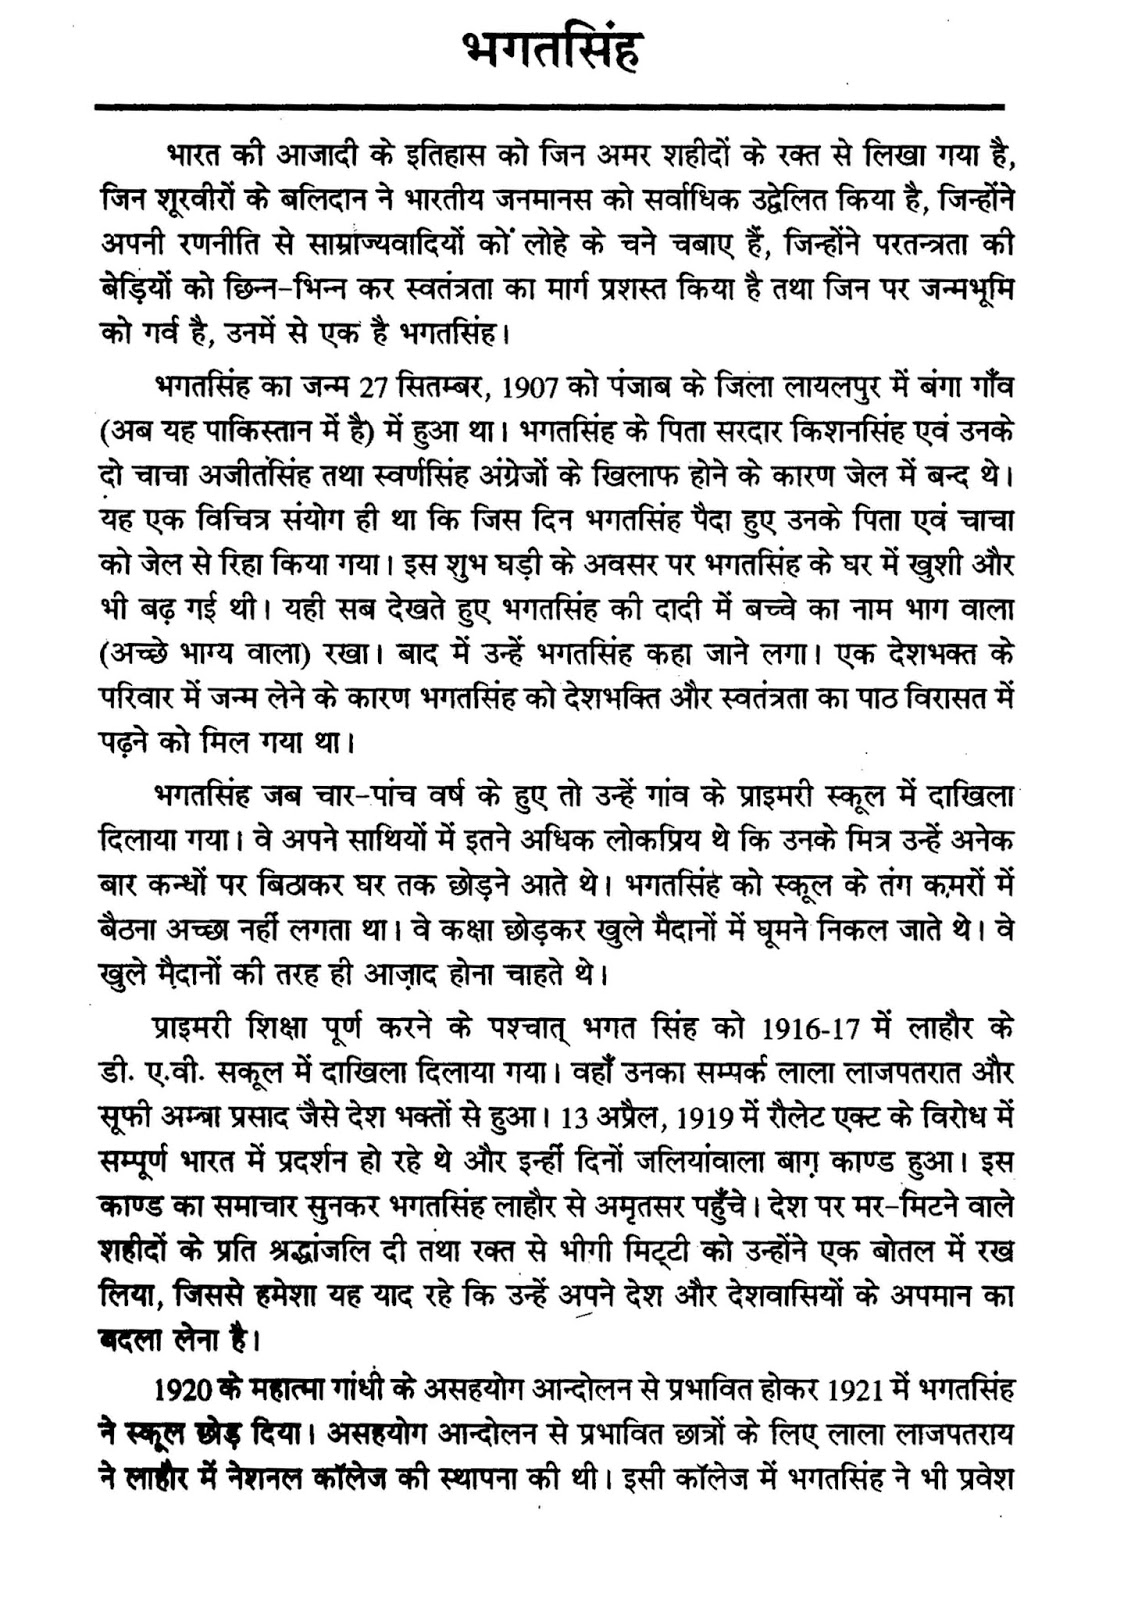 jawaharlal nehru essay in hindi pollution essay in english  hindi essay on bhagat singh essay on bhagat singh in hindi shorts hindi essay bhagat singh essay on pandit jawaharlal nehru